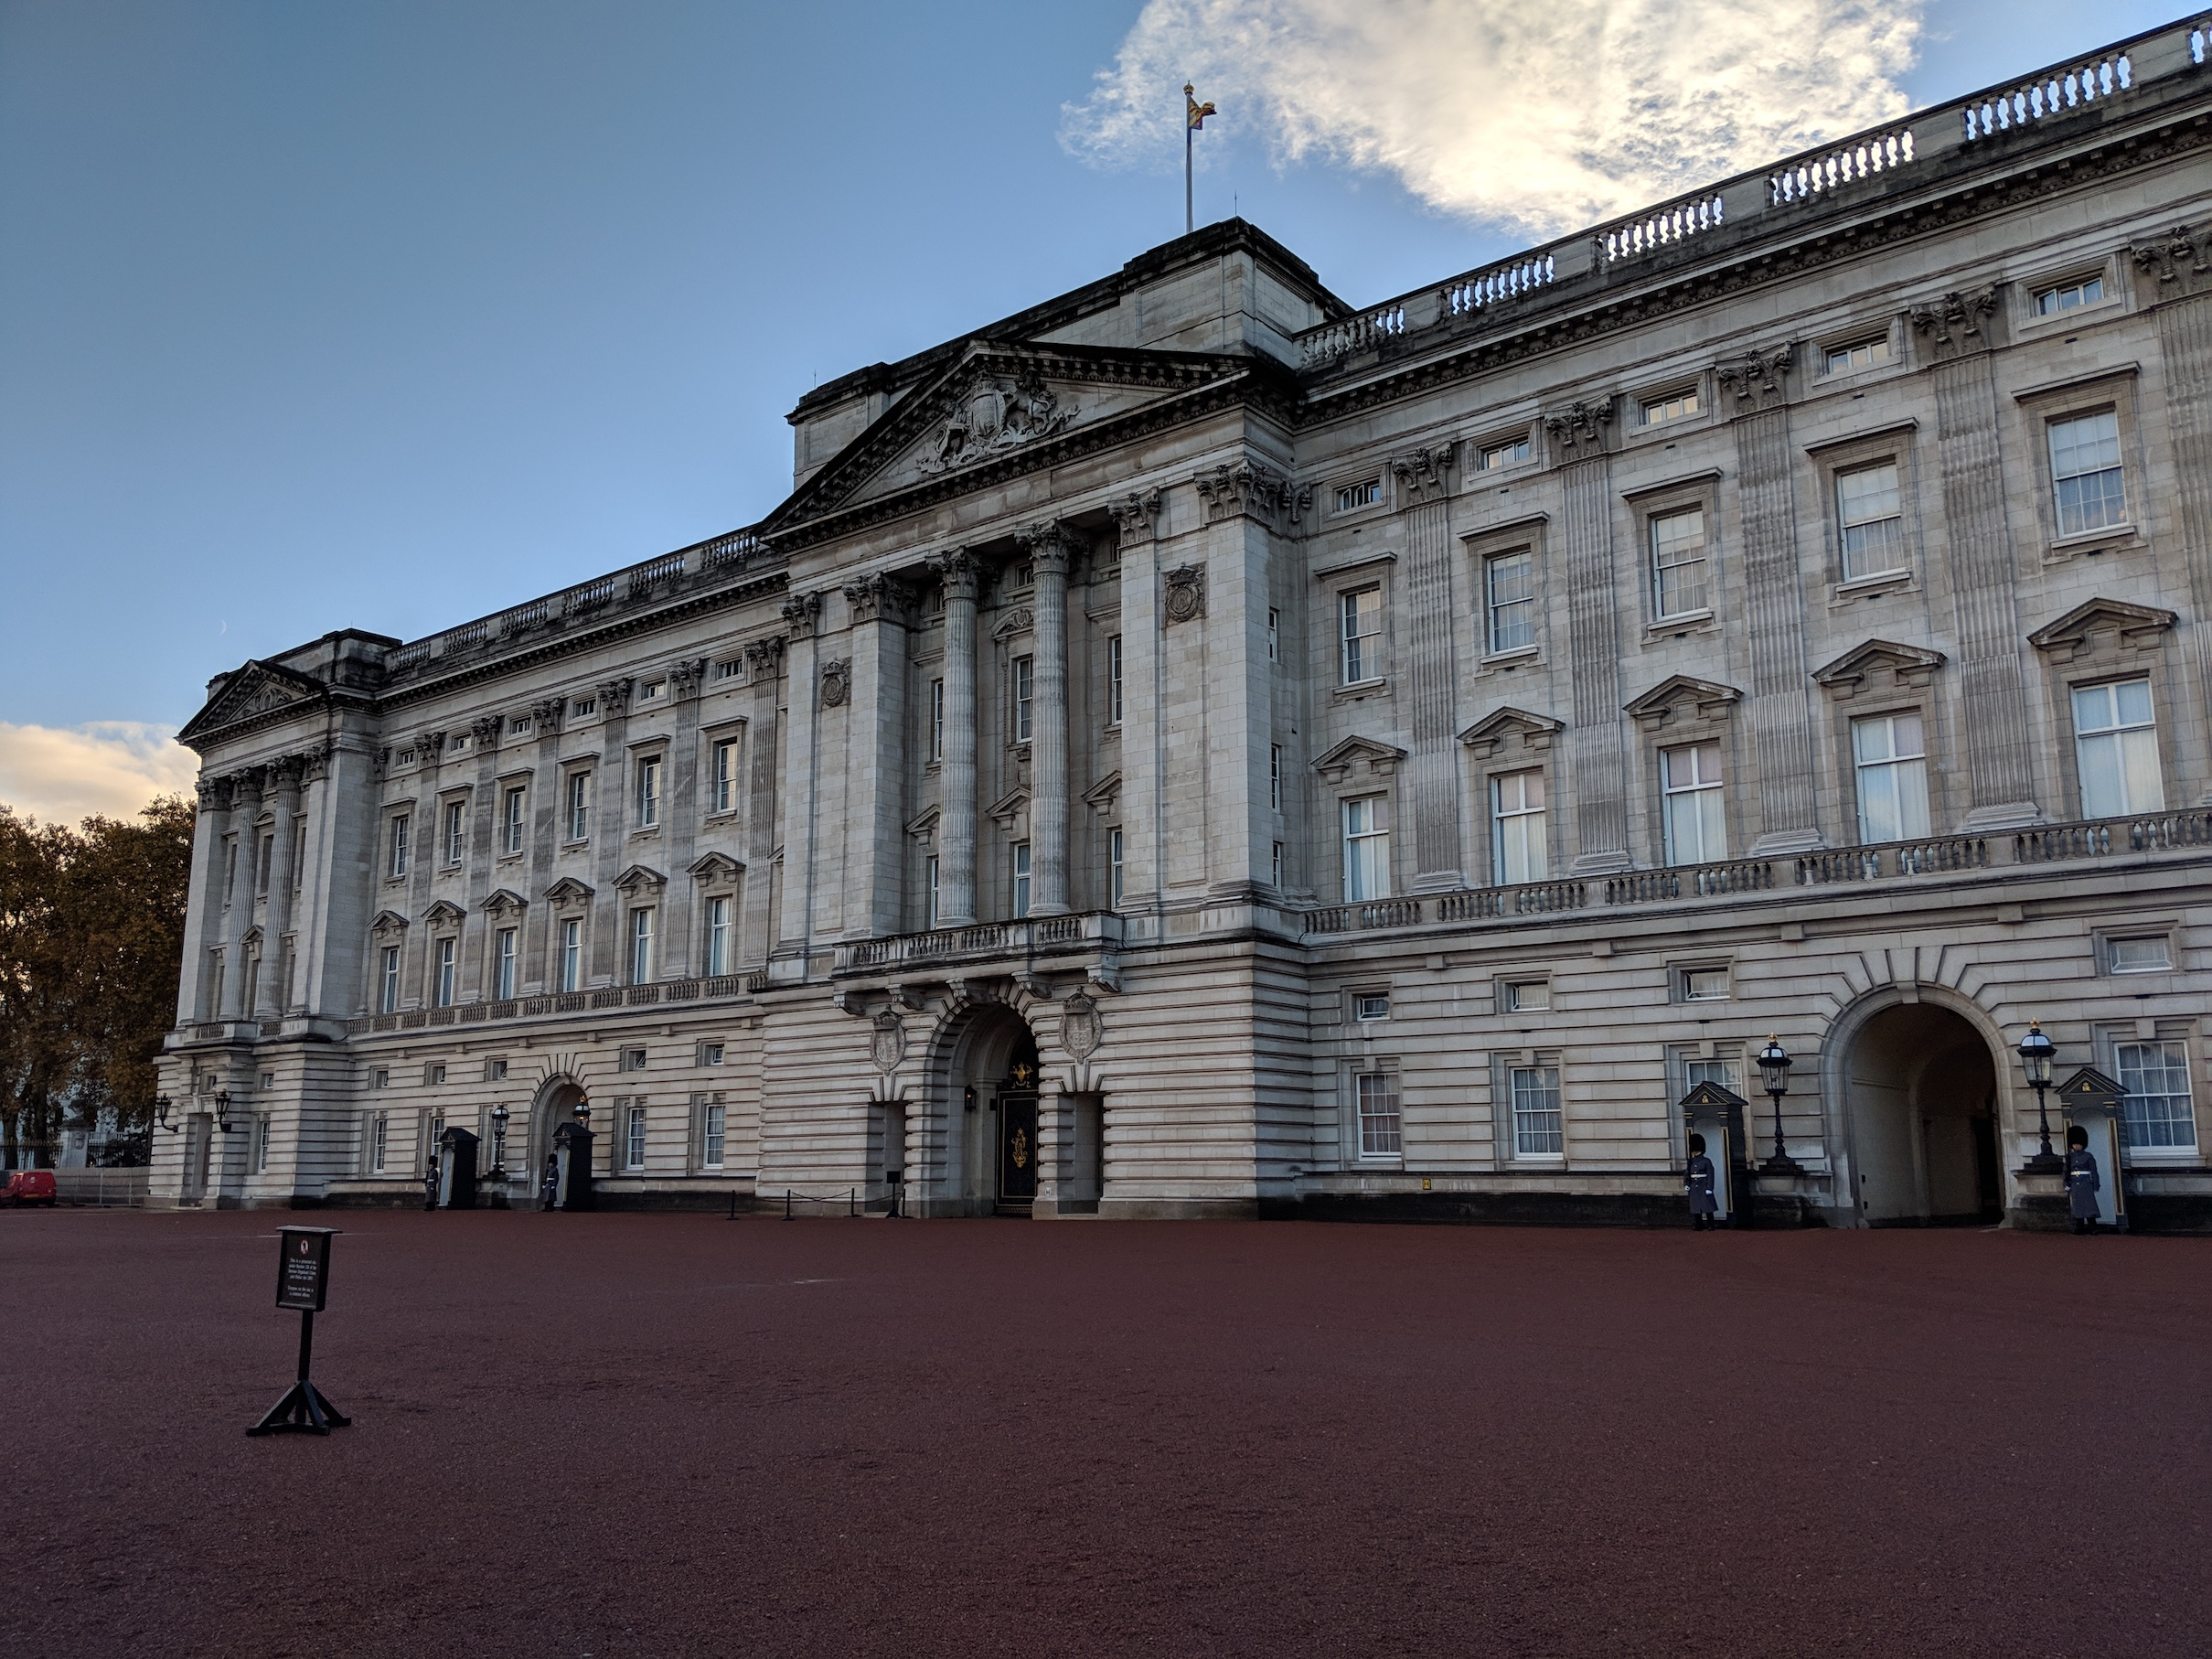 Famous facade of Buckingham Palace in London